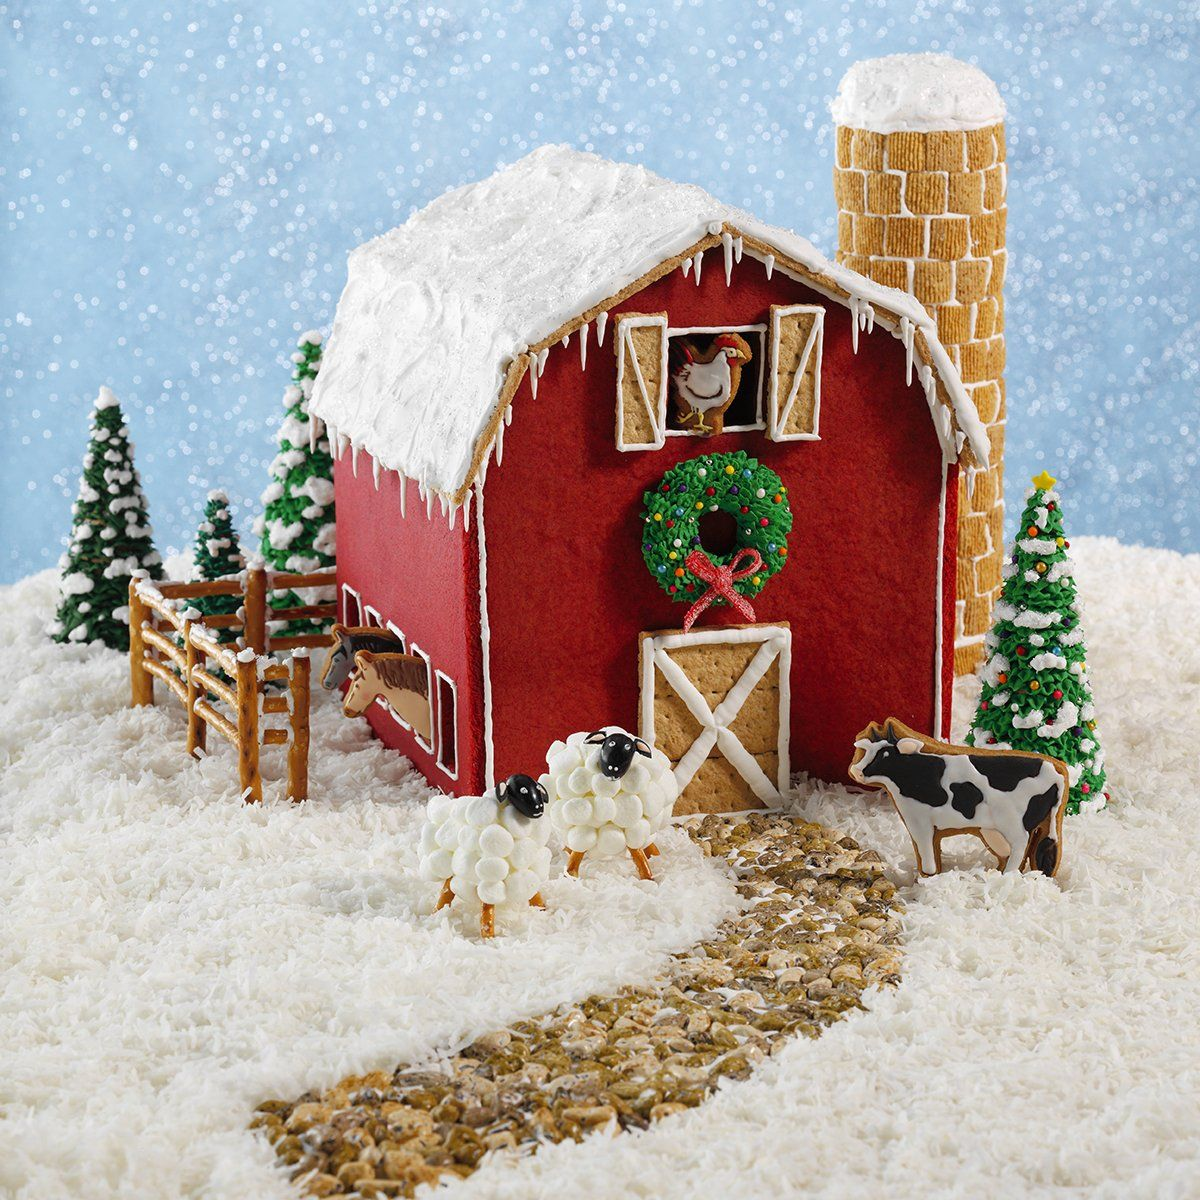 20 Must-See Gingerbread House Ideas #gingerbreadhousetemplate